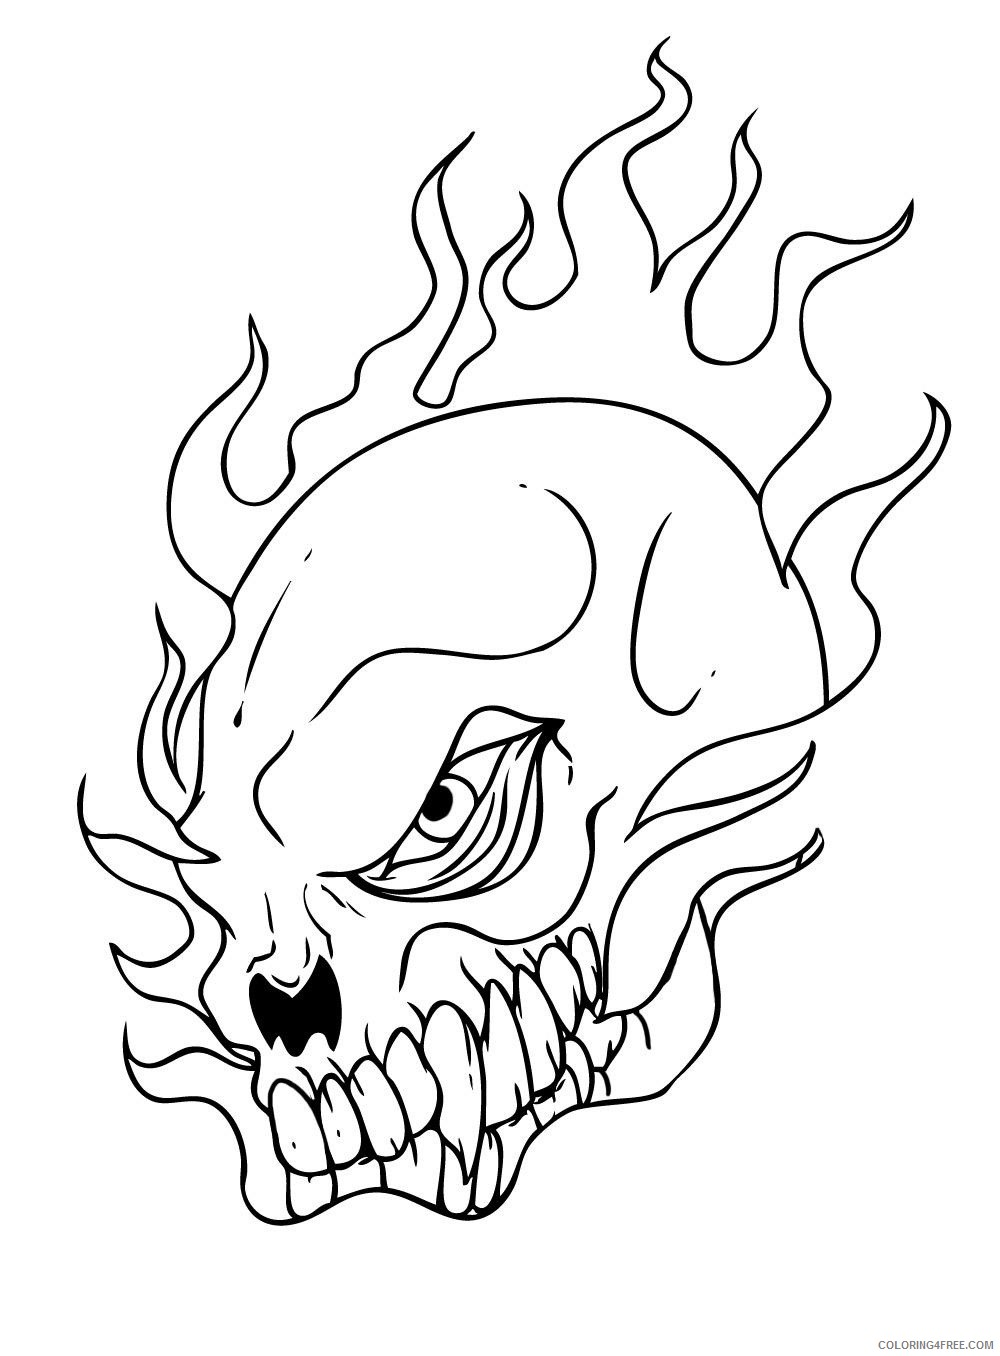 skull coloring pages in fire Coloring4free